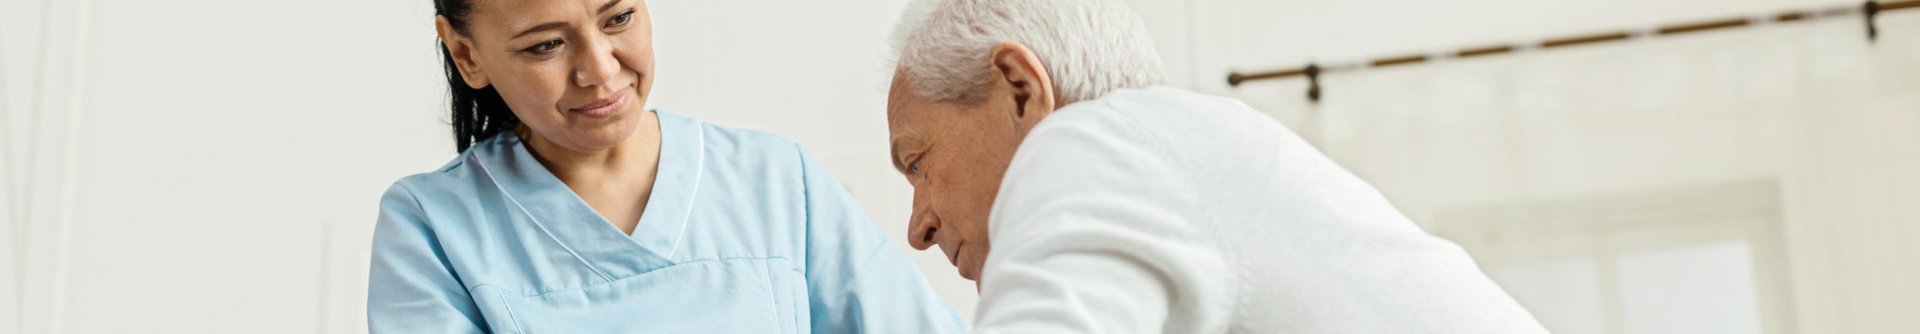 caregiver assisting the elder man to stand